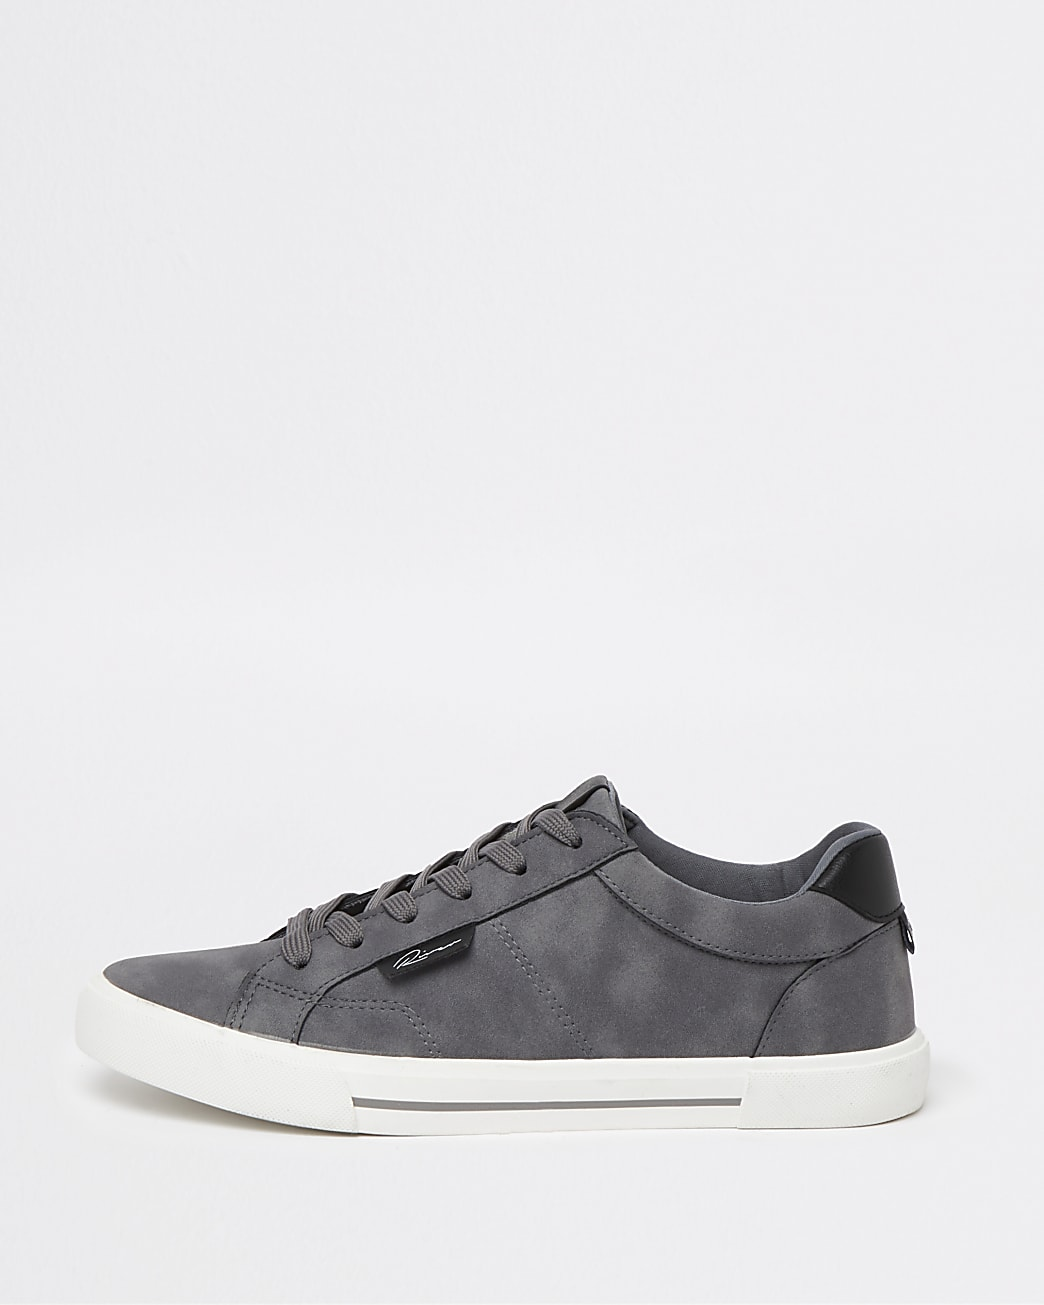 Grey lace up plimsoll trainers